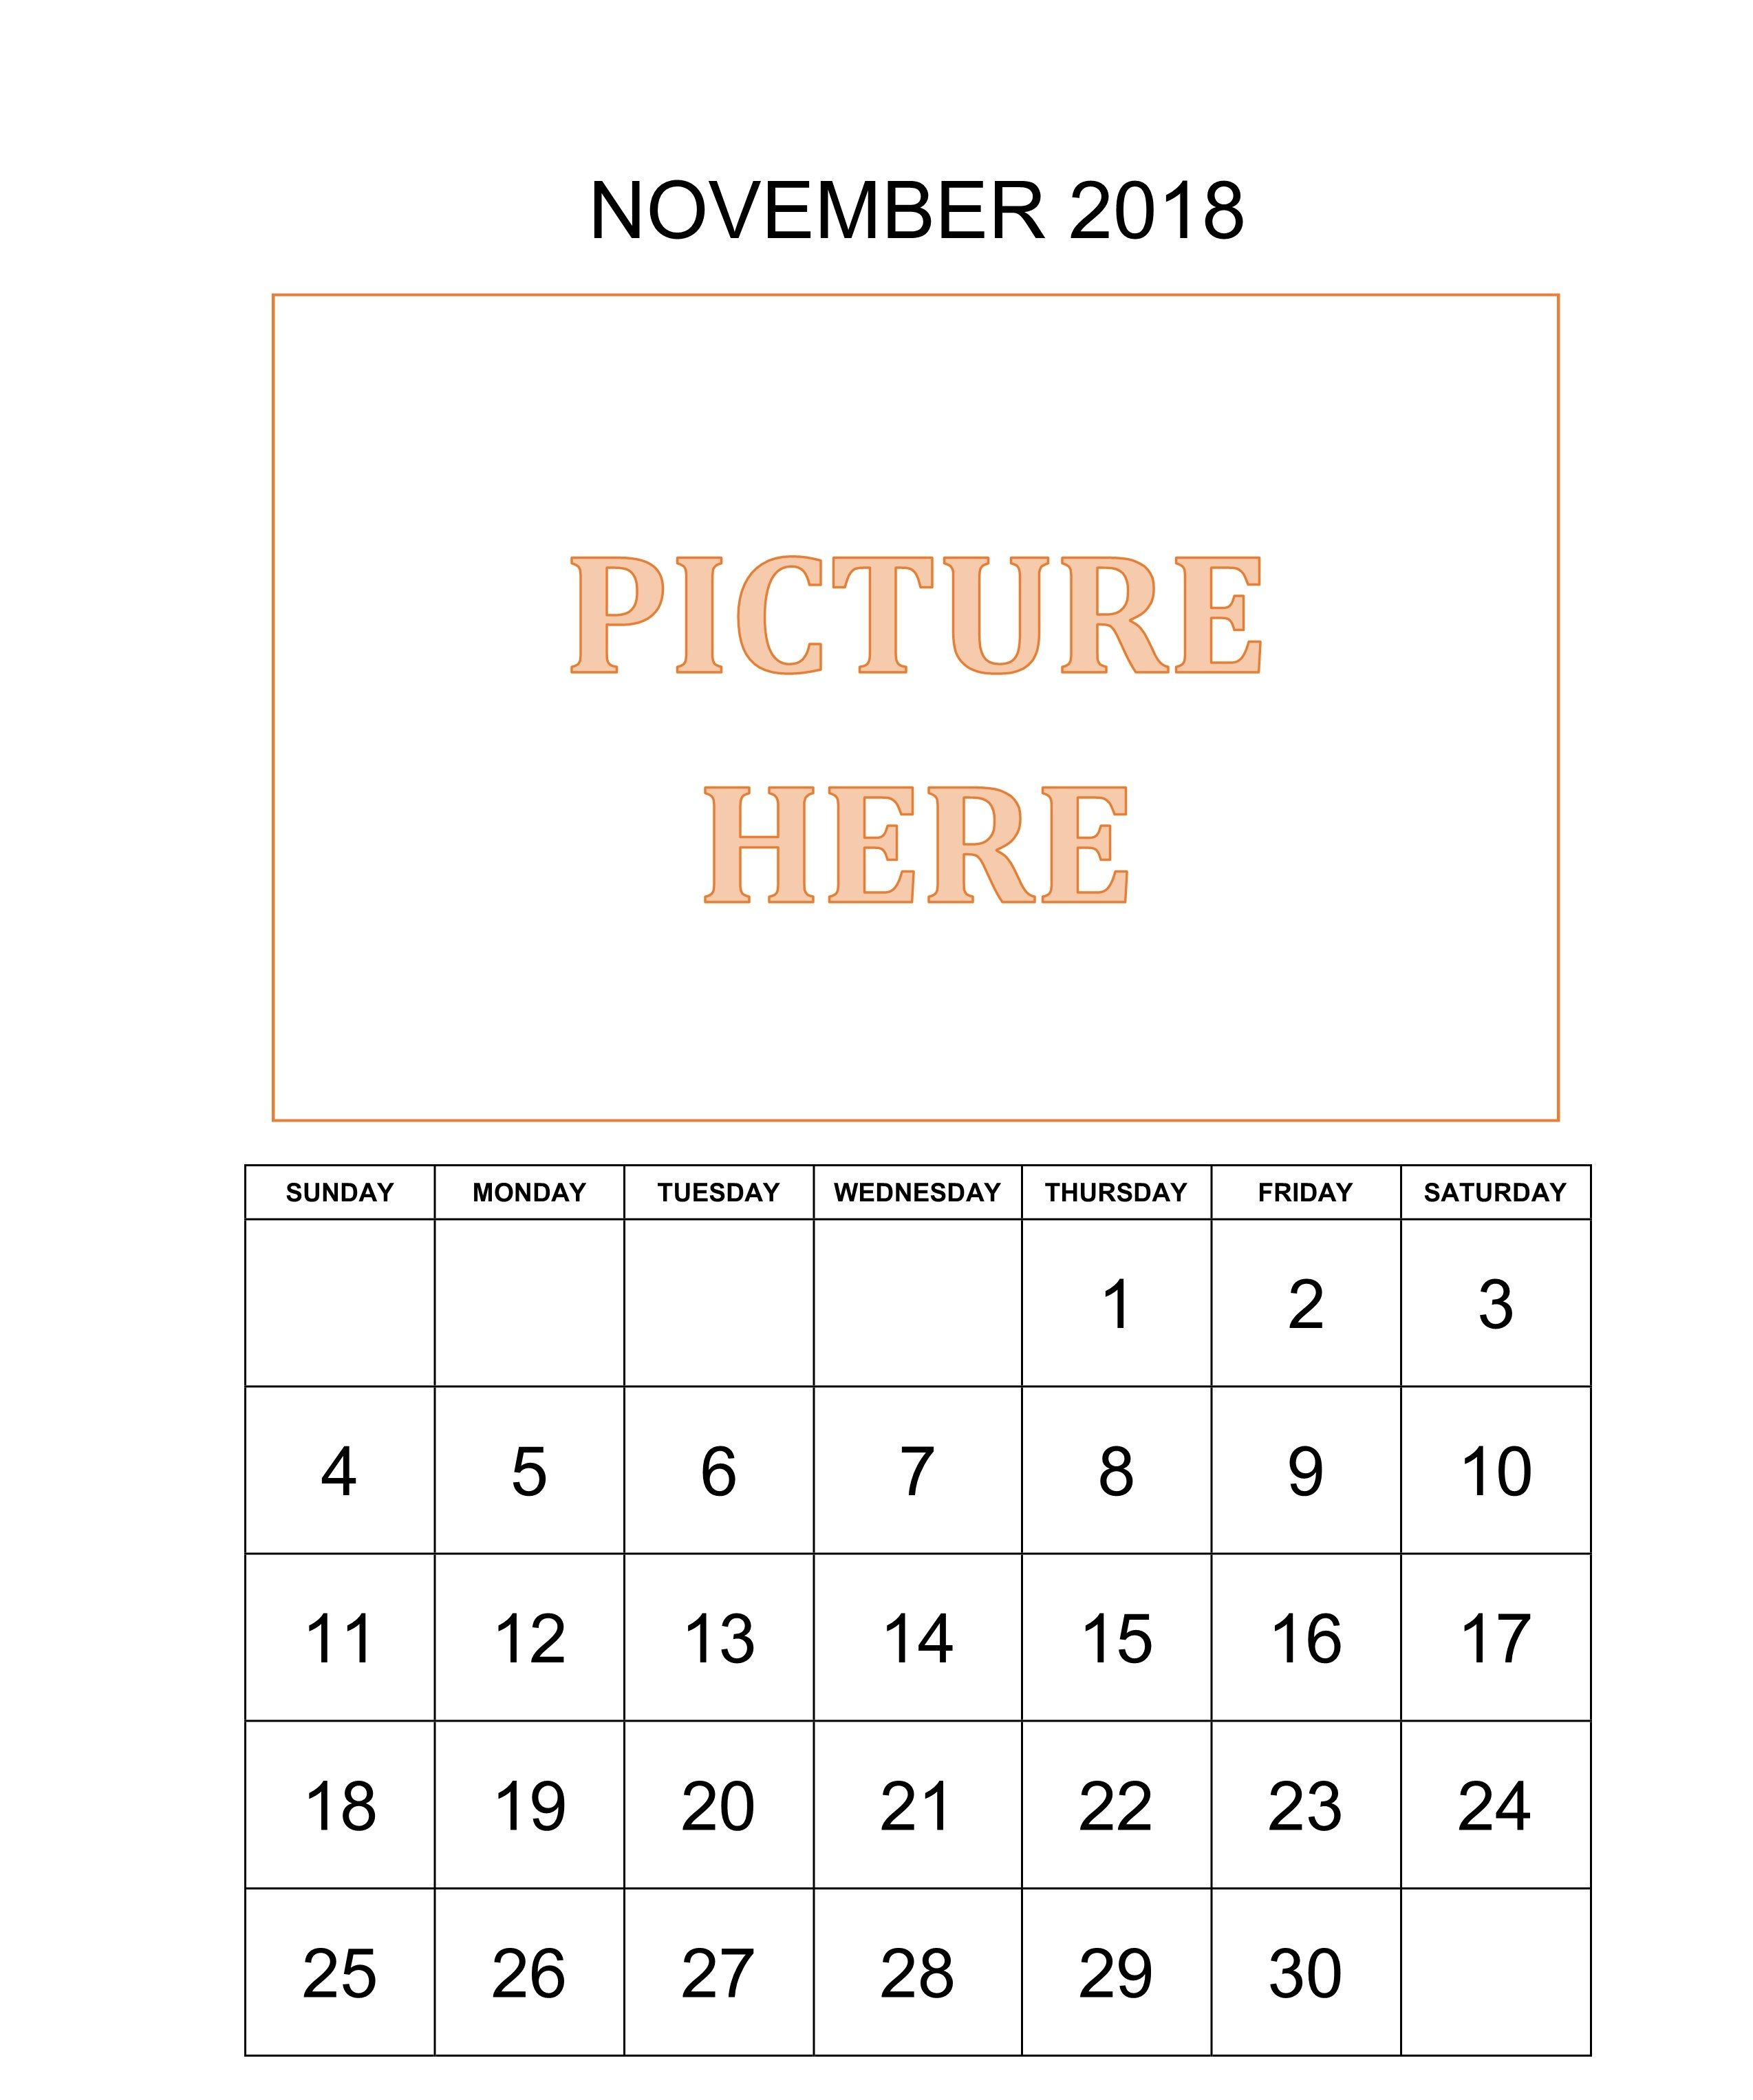 November 2018 Printable Calendar Waterproof | November 2018